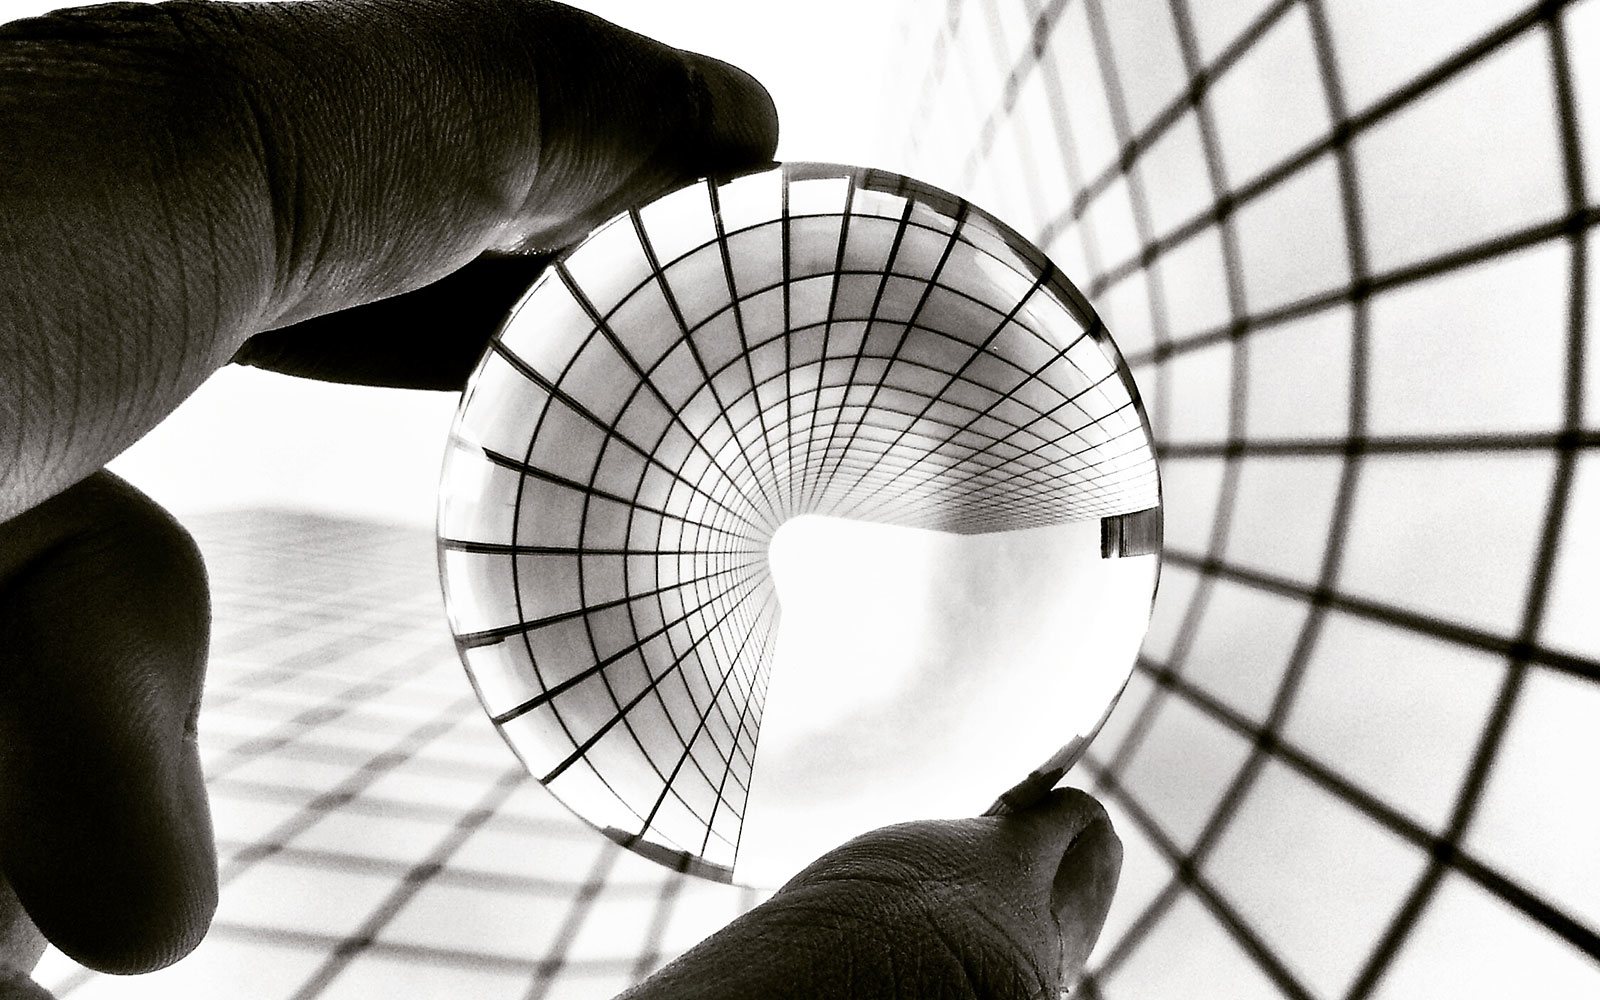 Play with lines, curves and perspective